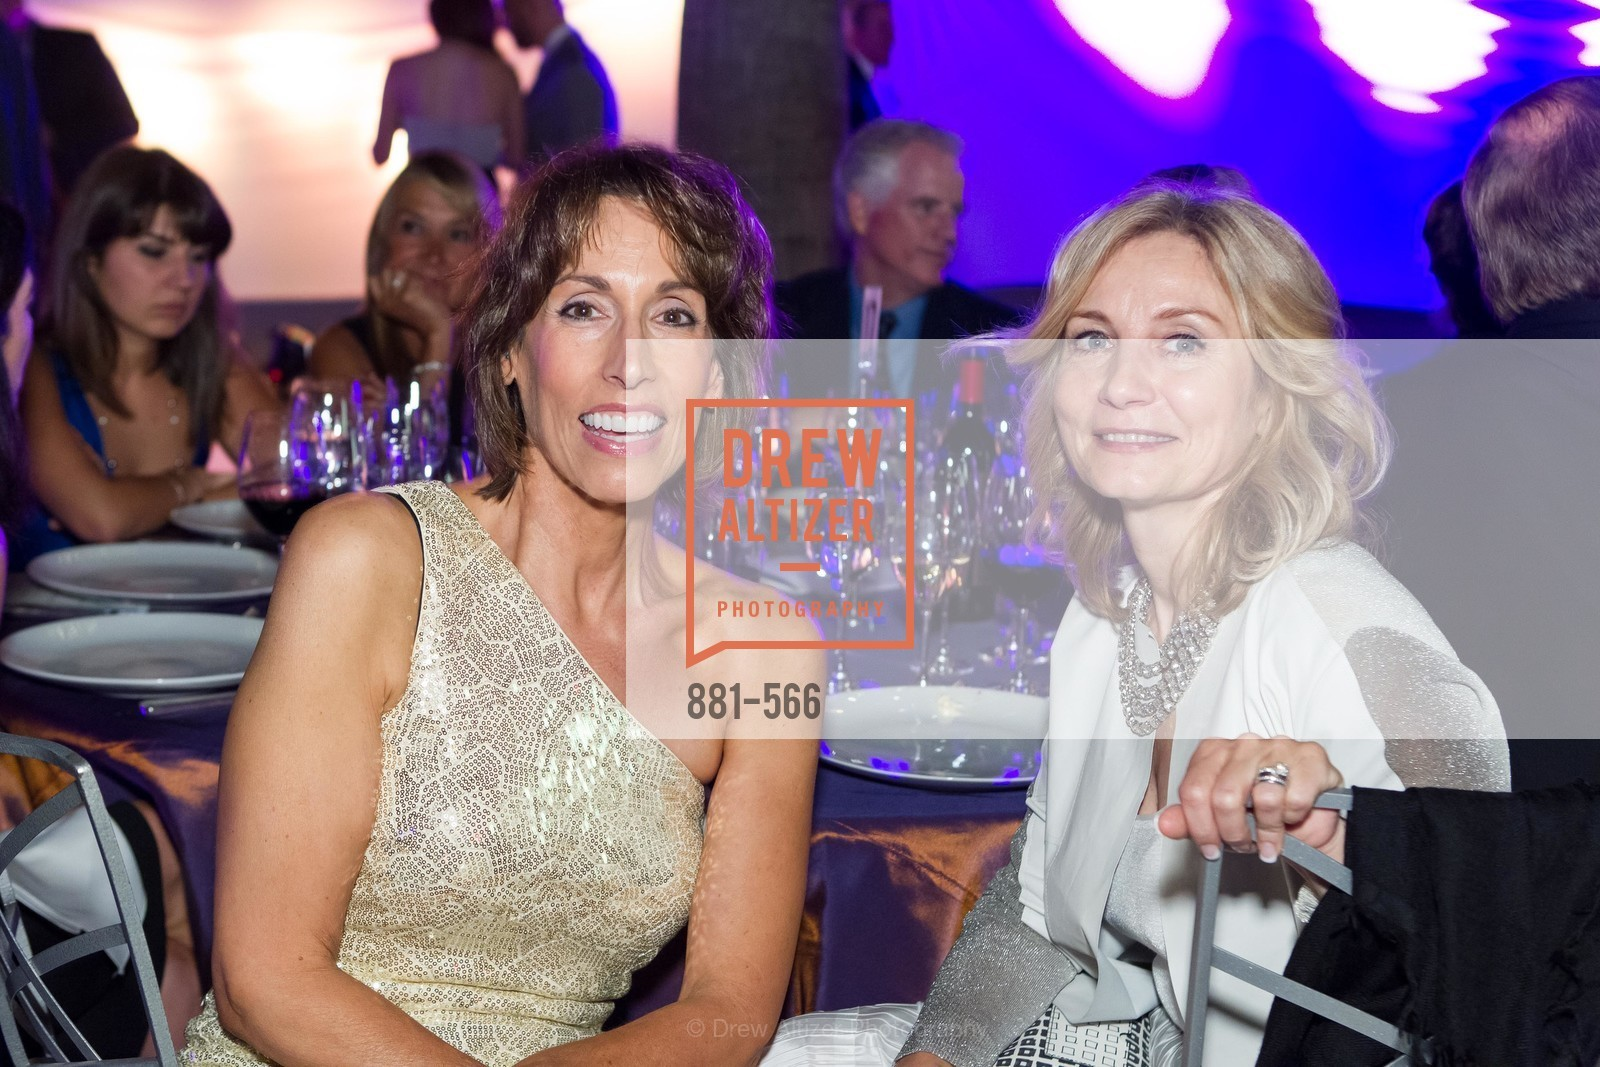 Randa Davis, Elena Lebedeva, SAN JOSE MUSEUM OF ART'S Spectrum Gala - 45th Anniversary, US, September 13th, 2014